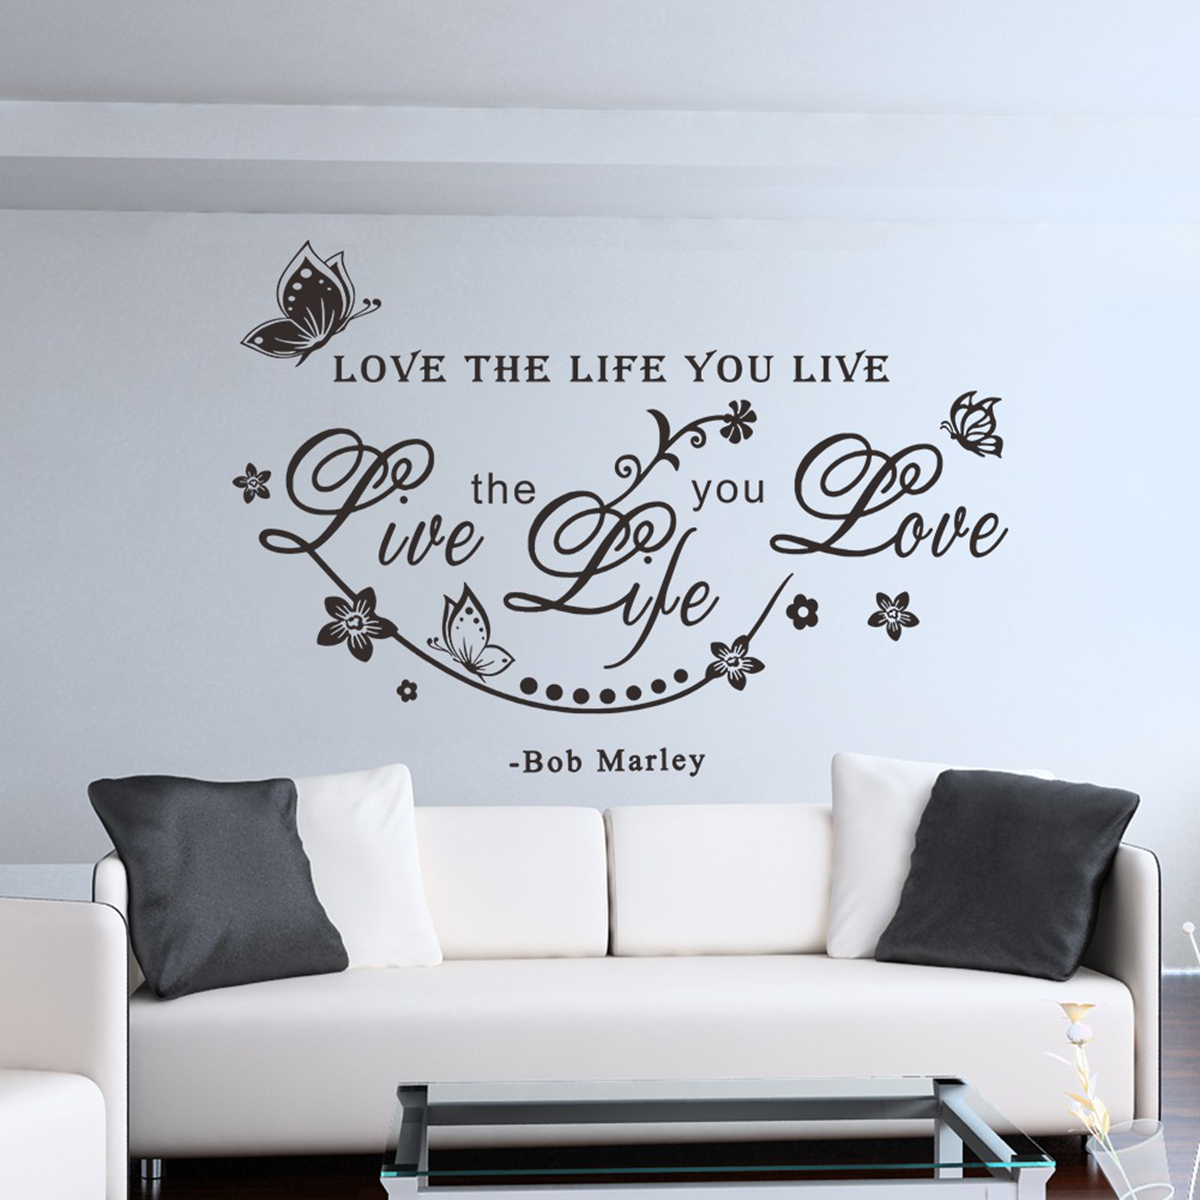 Family DIY Removable Wall Sticker Decal Art Vinyl Quotes ...